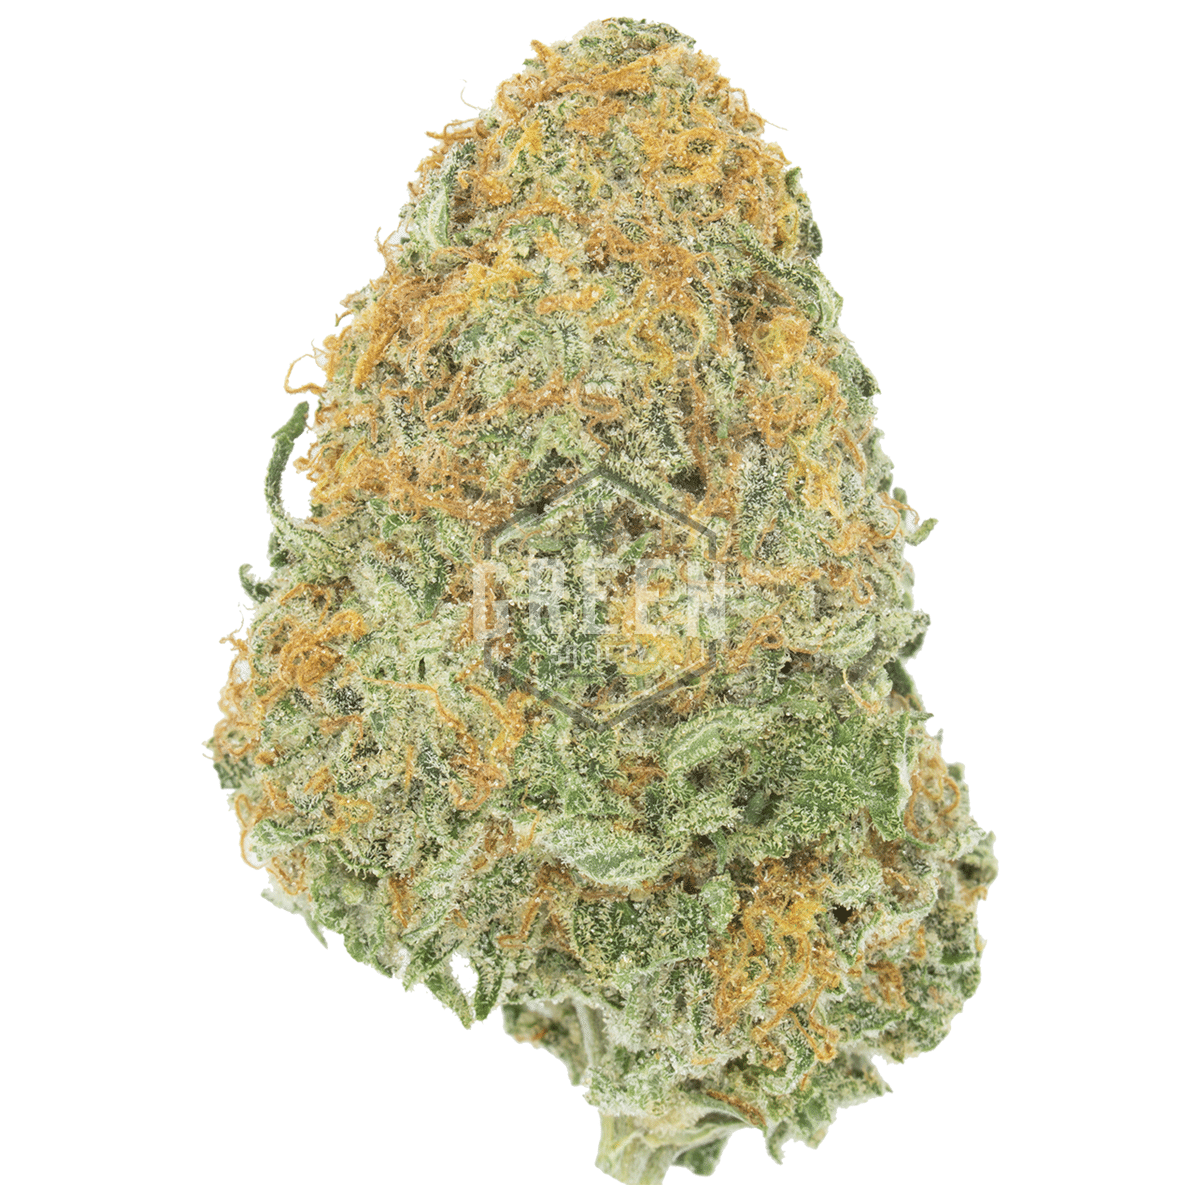 Girl Scout Cookies by Green Society - Image © 2018 Green Society. All Rights Reserved.